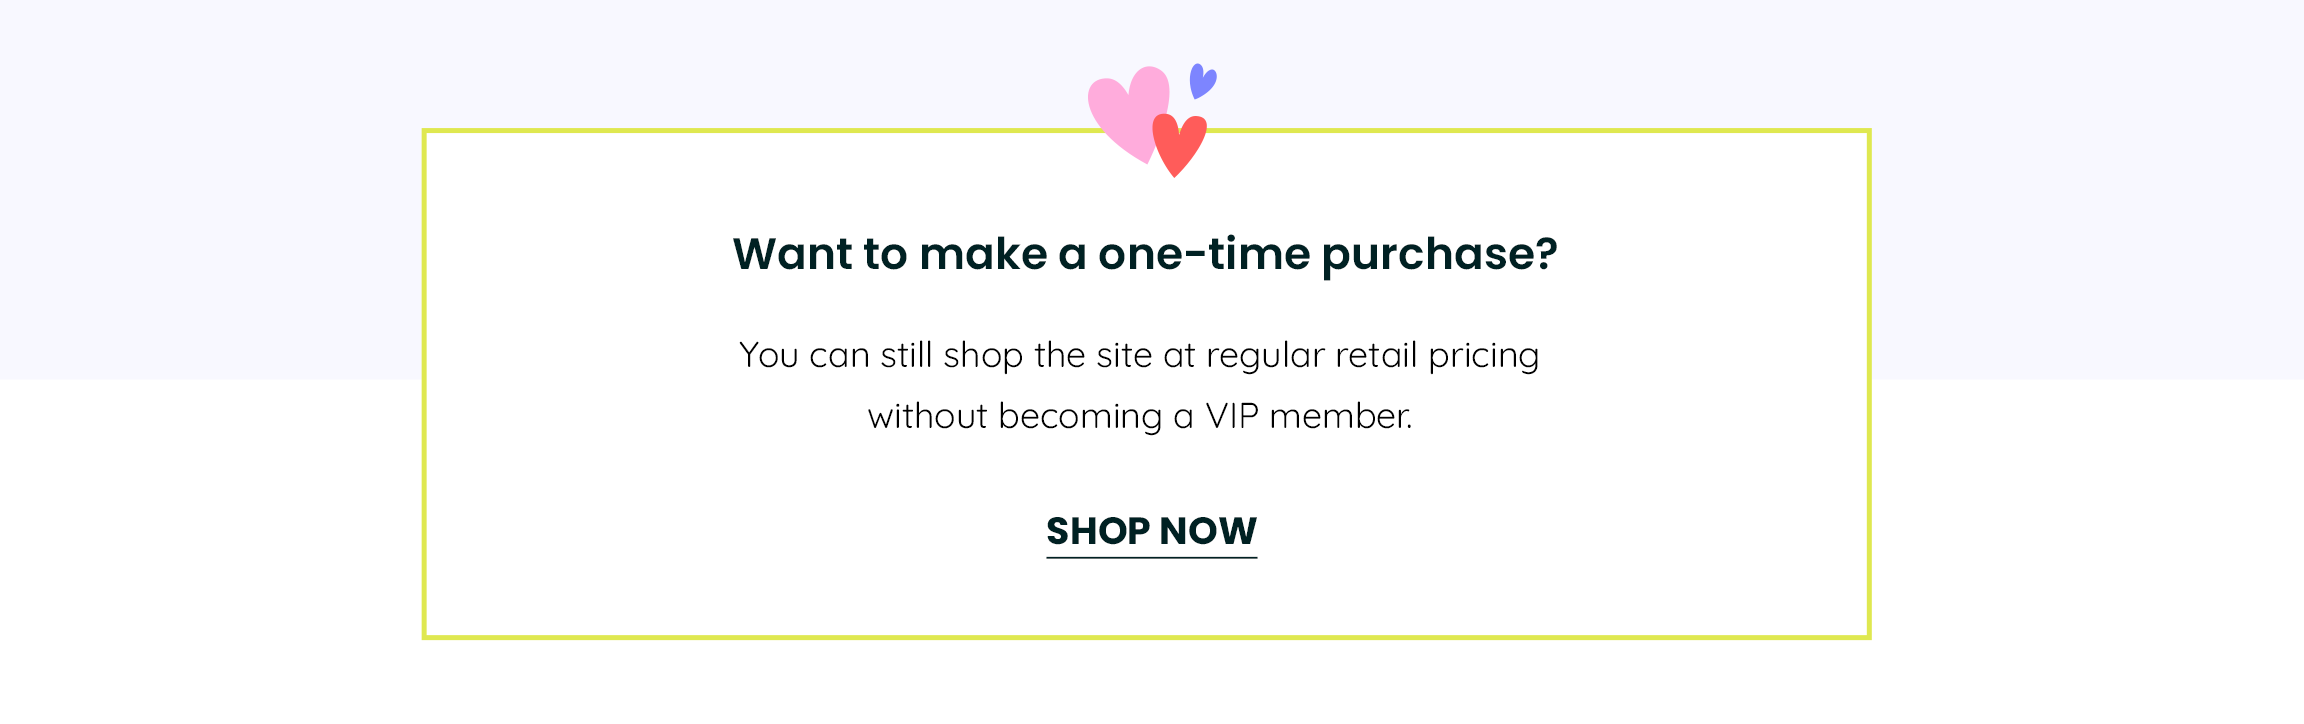 Want to make a one-time purchase? You can still shop the site at a regular retail pricing without being a VIP member.